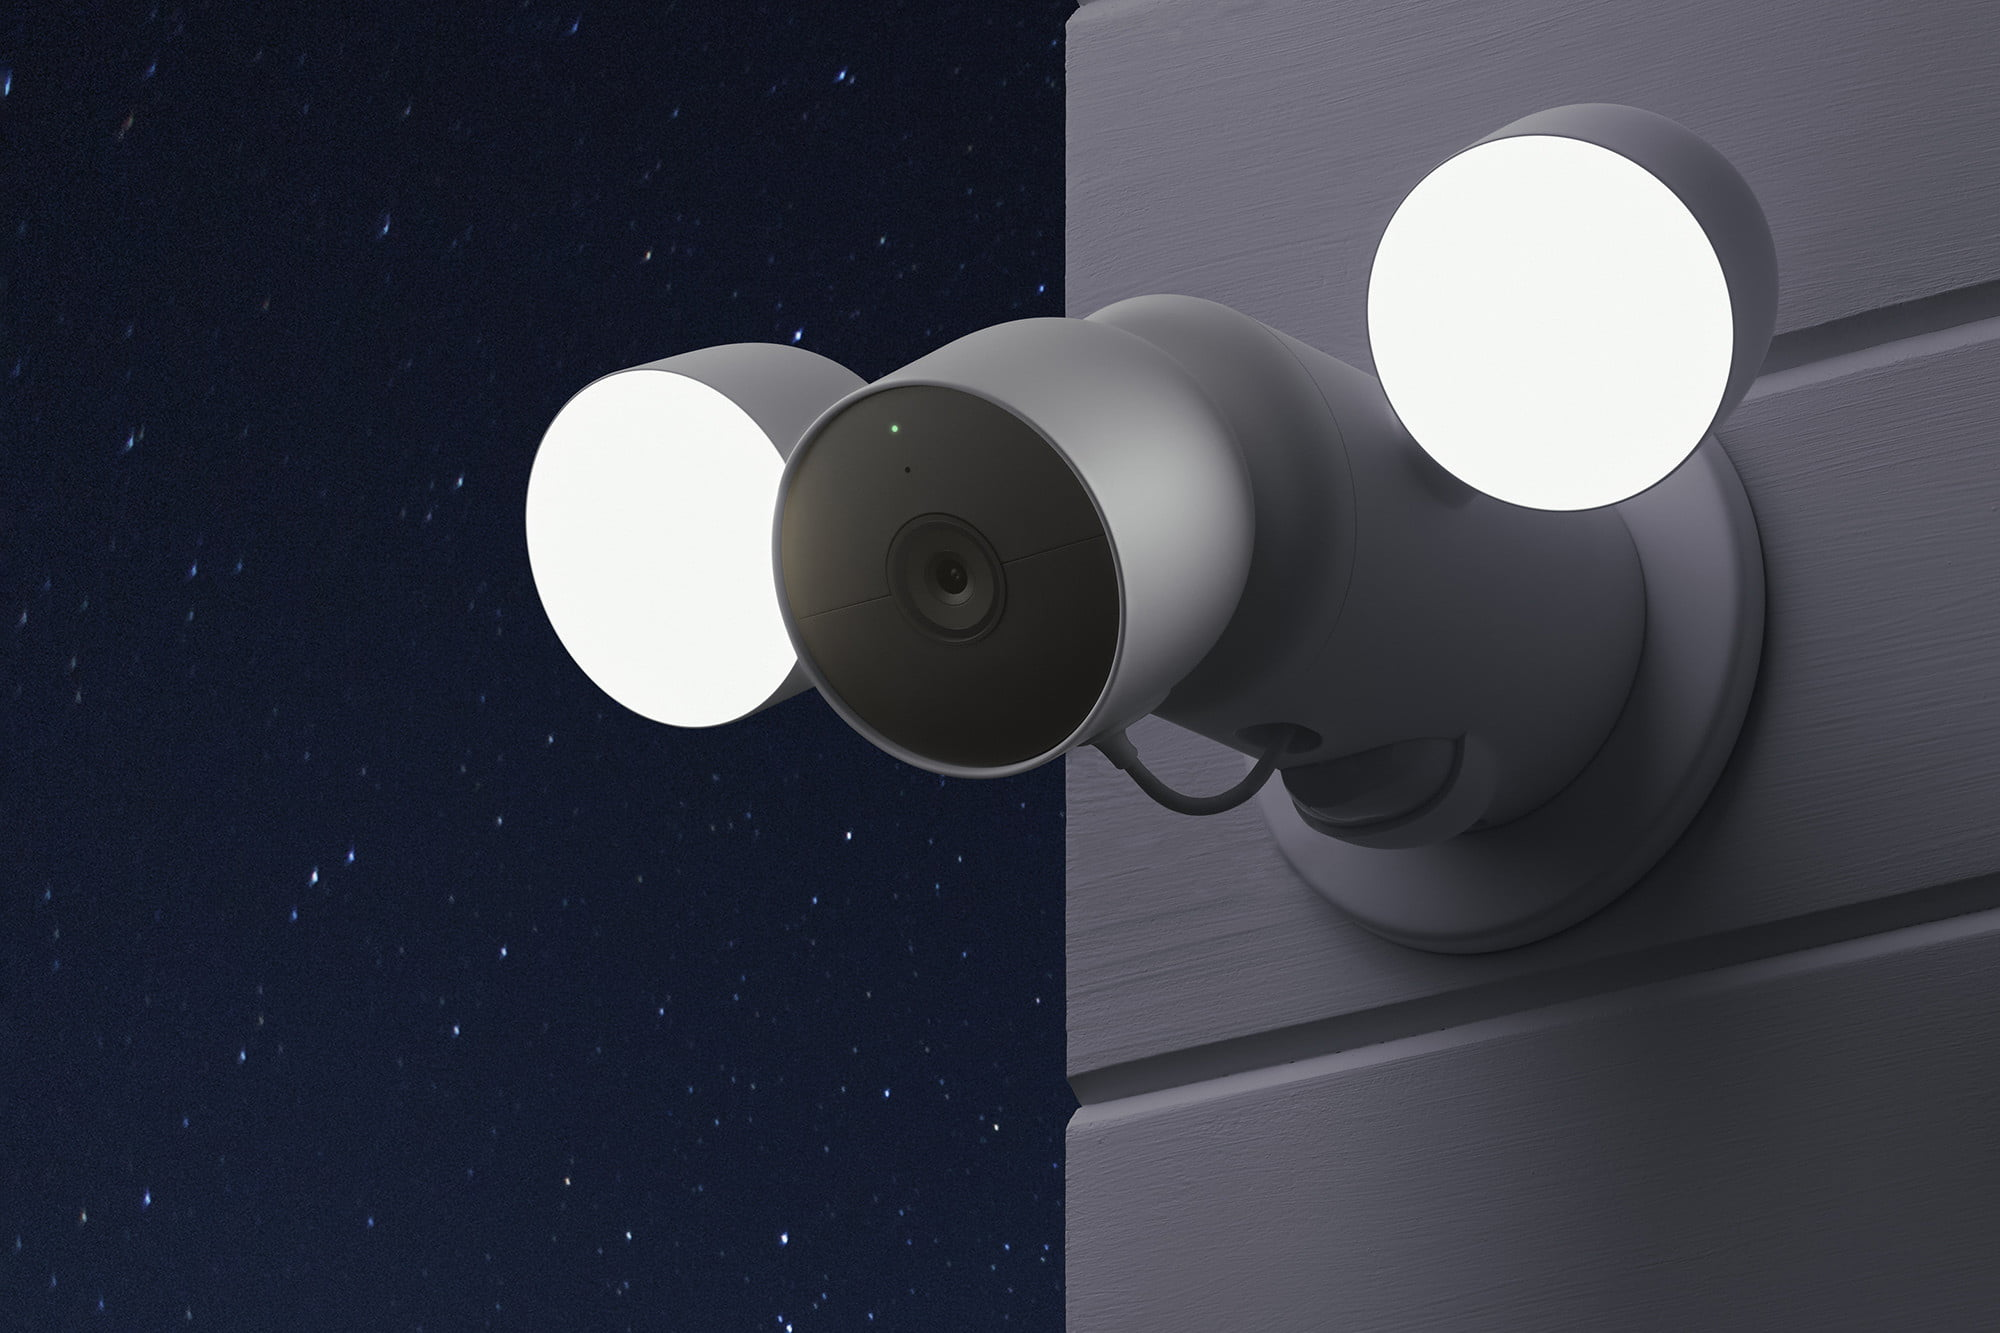 The Google Nest Cam with Floodlight mounted on a house.